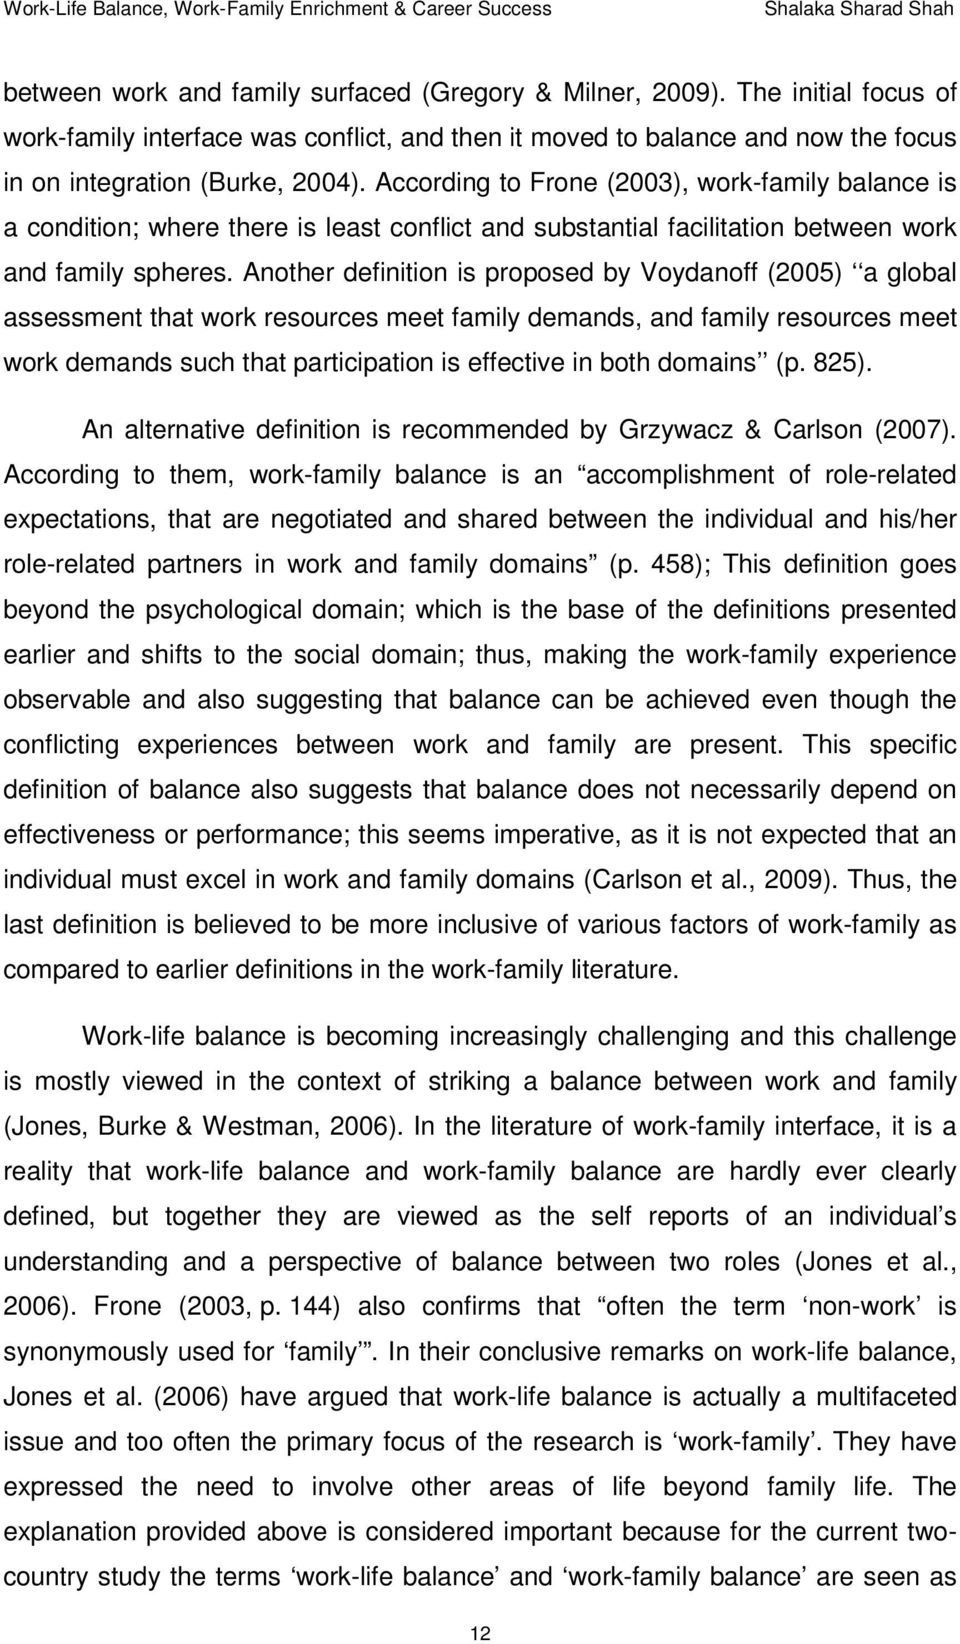 Another definition is proposed by Voydanoff (2005) a global assessment that work resources meet family demands, and family resources meet work demands such that participation is effective in both